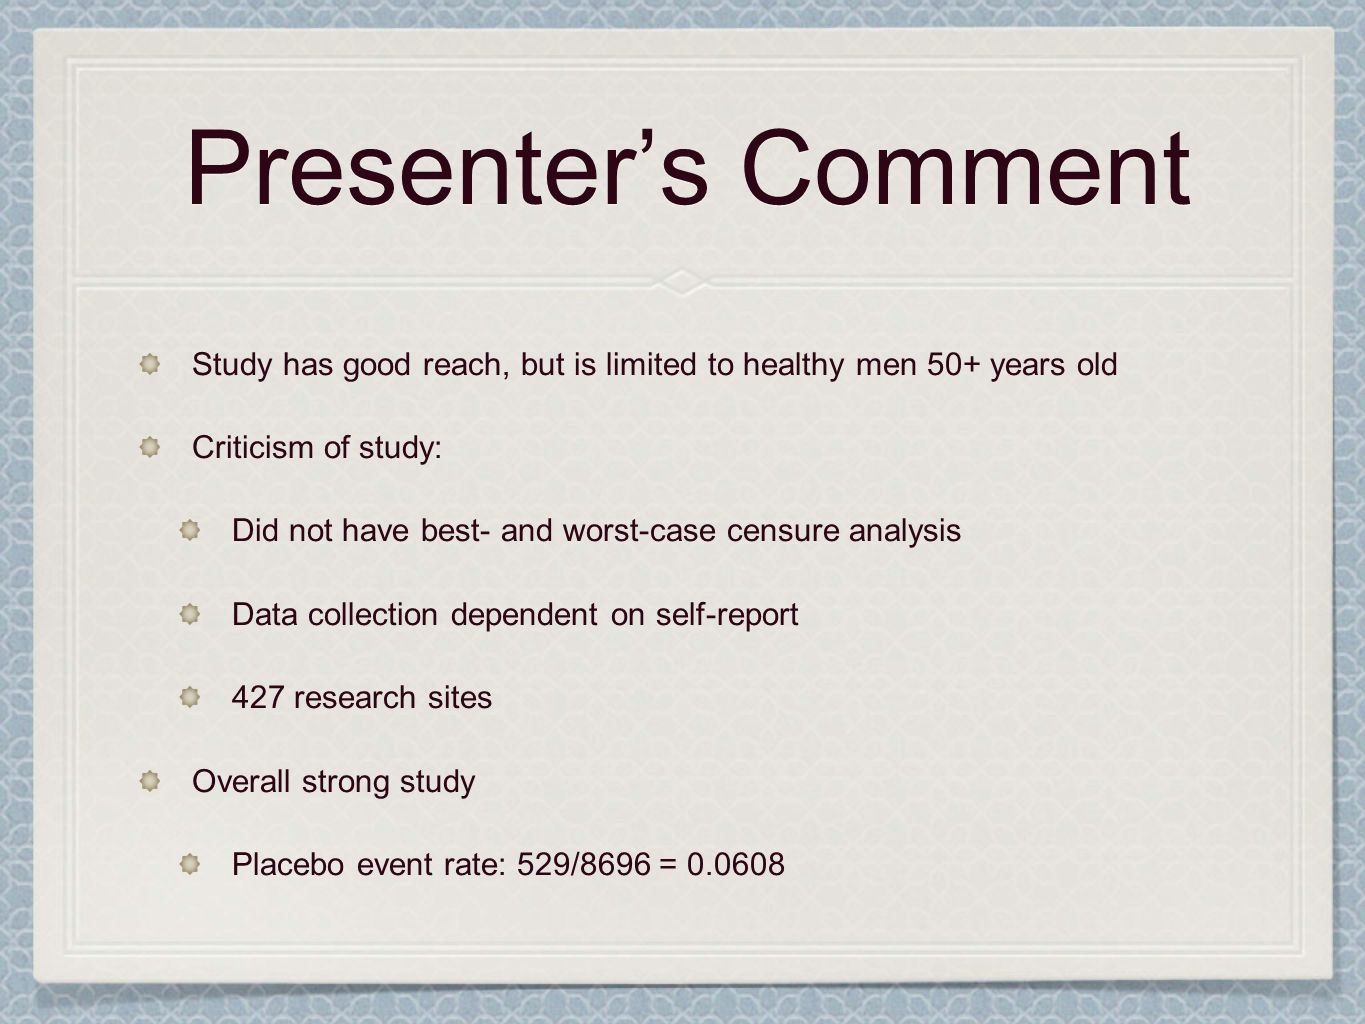 Presenter's CommentStudy has good reach, but is limited to healthy men 50+ years old. Criticism of study: